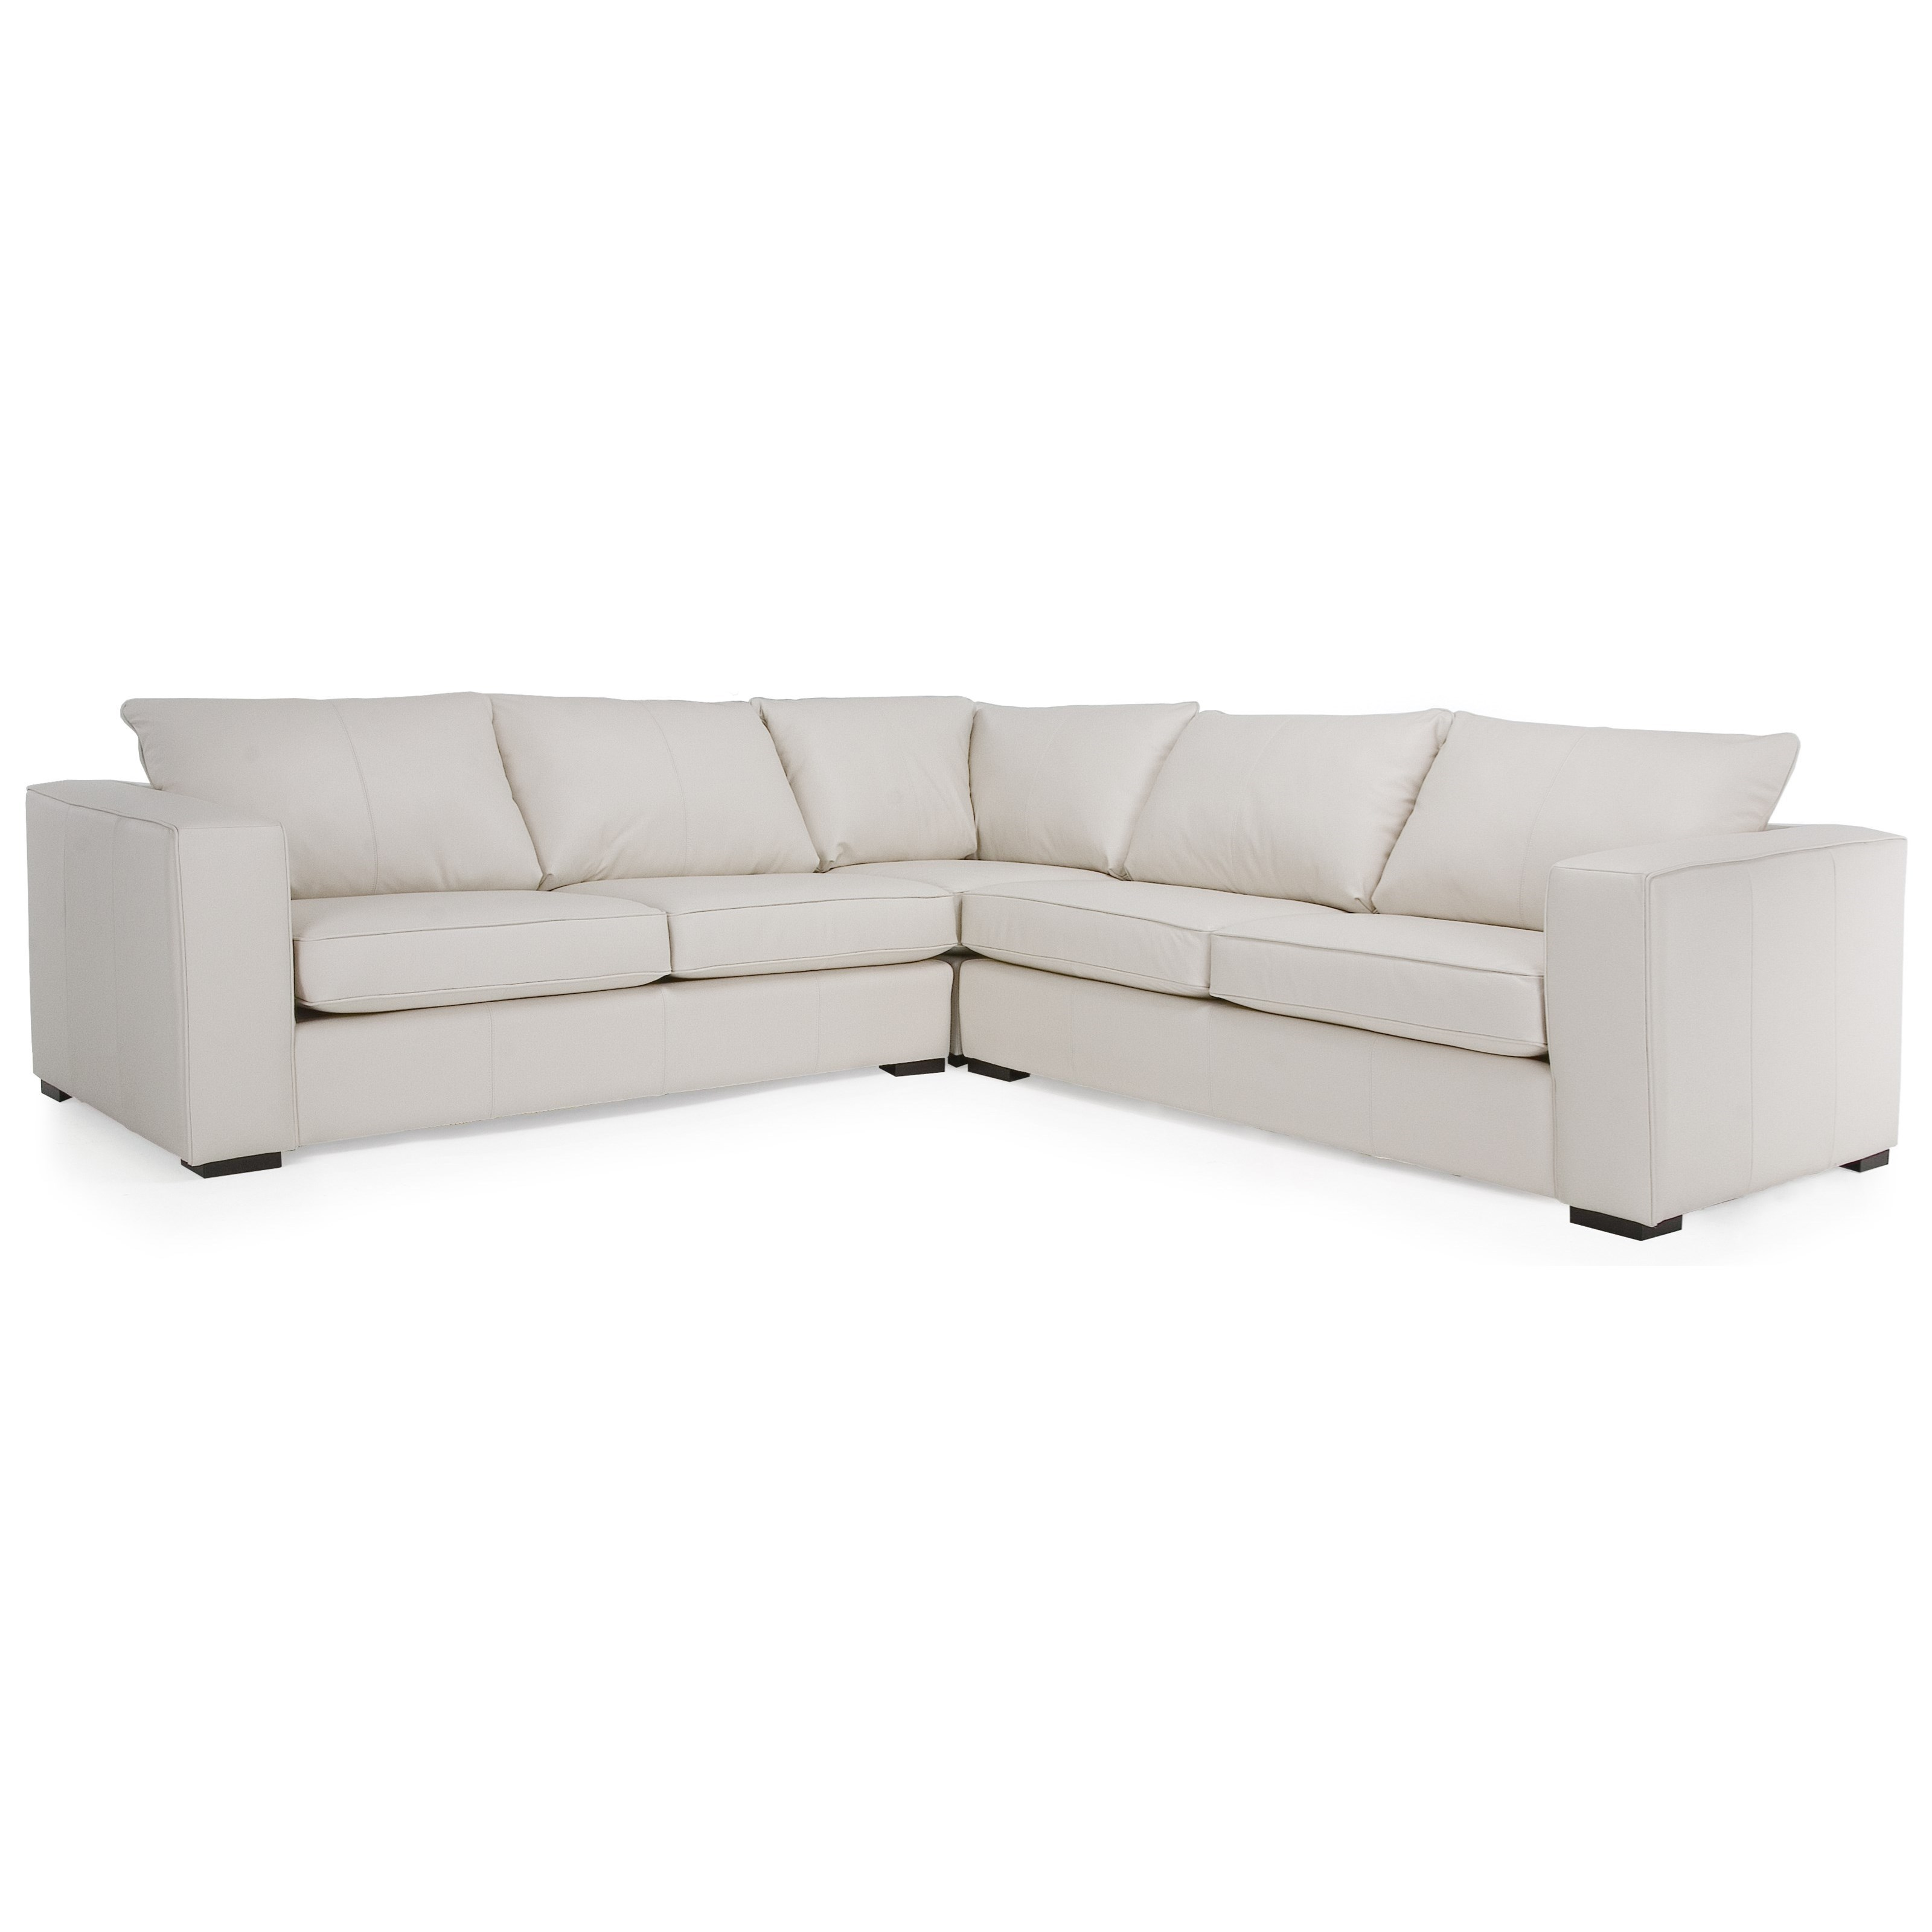 Braden Sectional Sofa by Taelor Designs at Bennett's Furniture and Mattresses